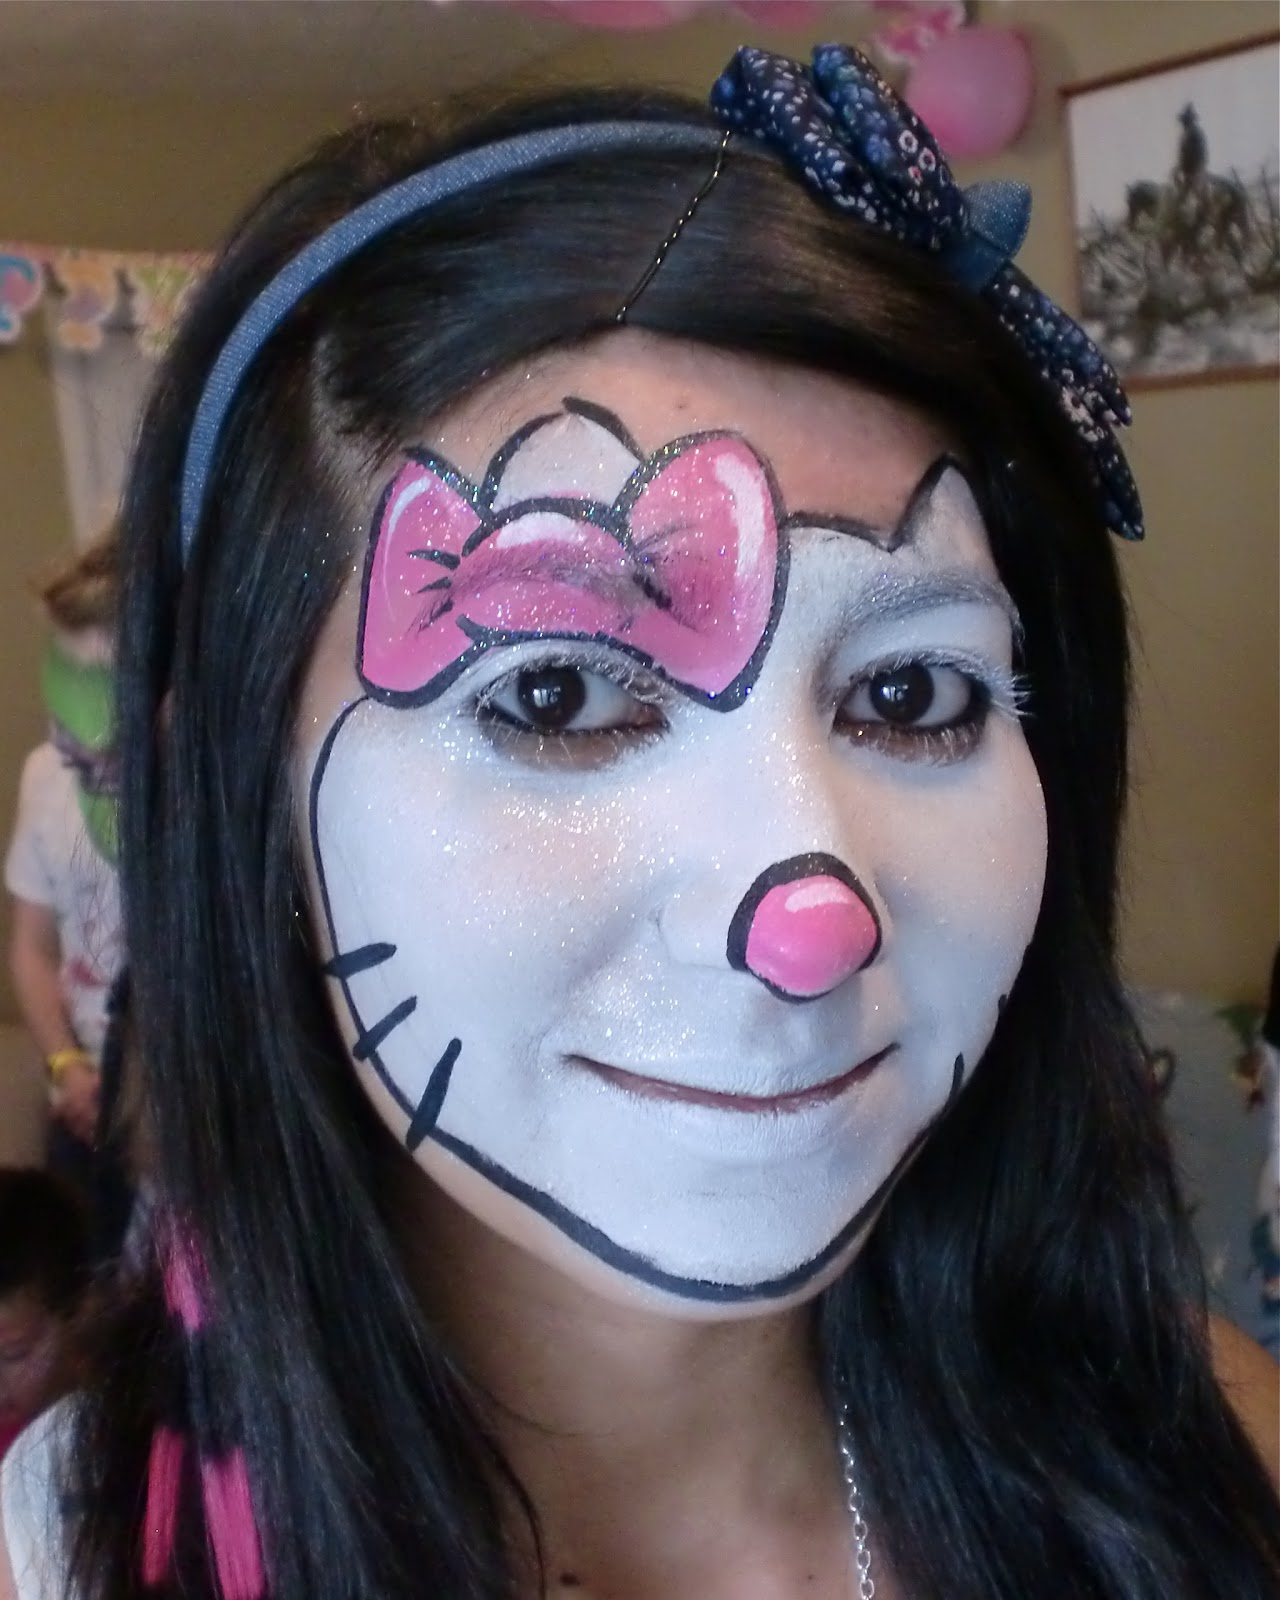 Face Painting Illusions And Balloon Art, LLC: Face